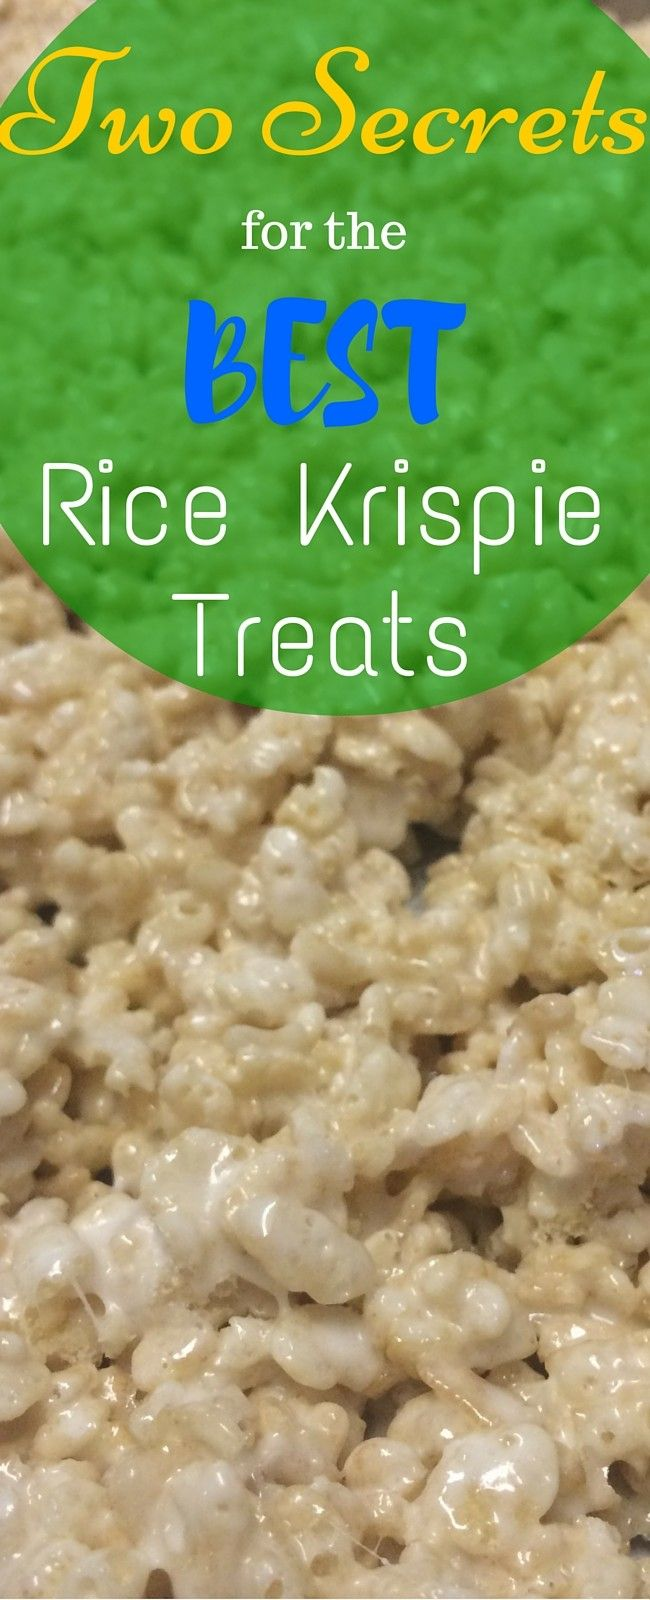 Every kid's favorite dessert (at least at my house) has to be Rice Krispie treats! The ingredients for this family favorite are easy to keep on hand, and I have found generic crisp rice cereal and marshmallows work just as well as the name brands. I've developed a couple of tweaks to the original recipe …